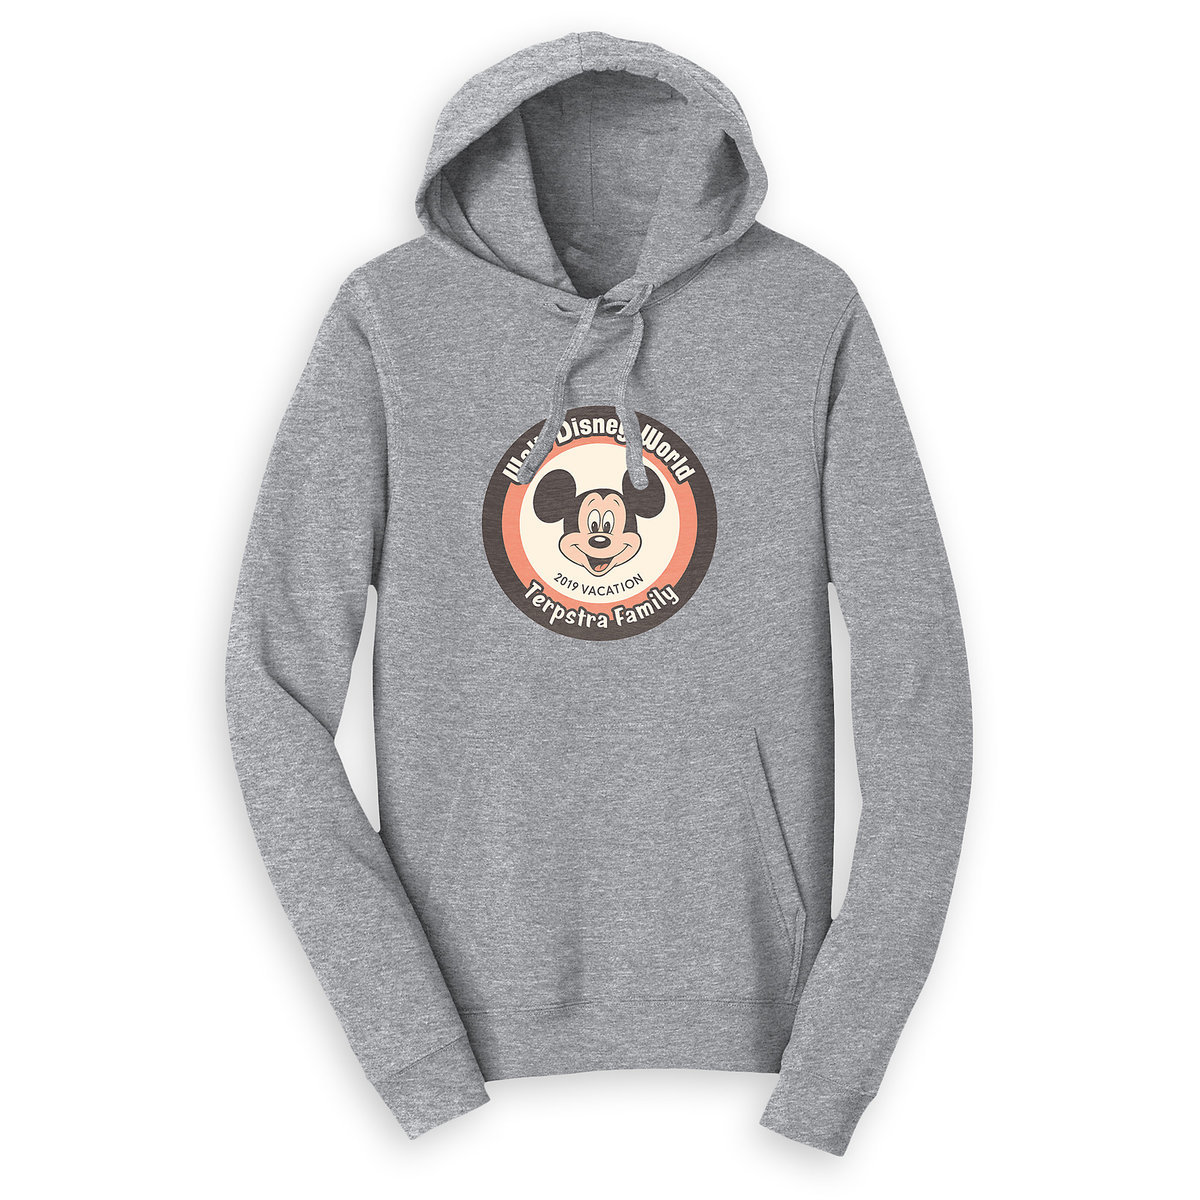 f82fd5829b23 Product Image of Mickey Mouse Family Vacation Pullover Hoodie for Adults -  Walt Disney World 2019